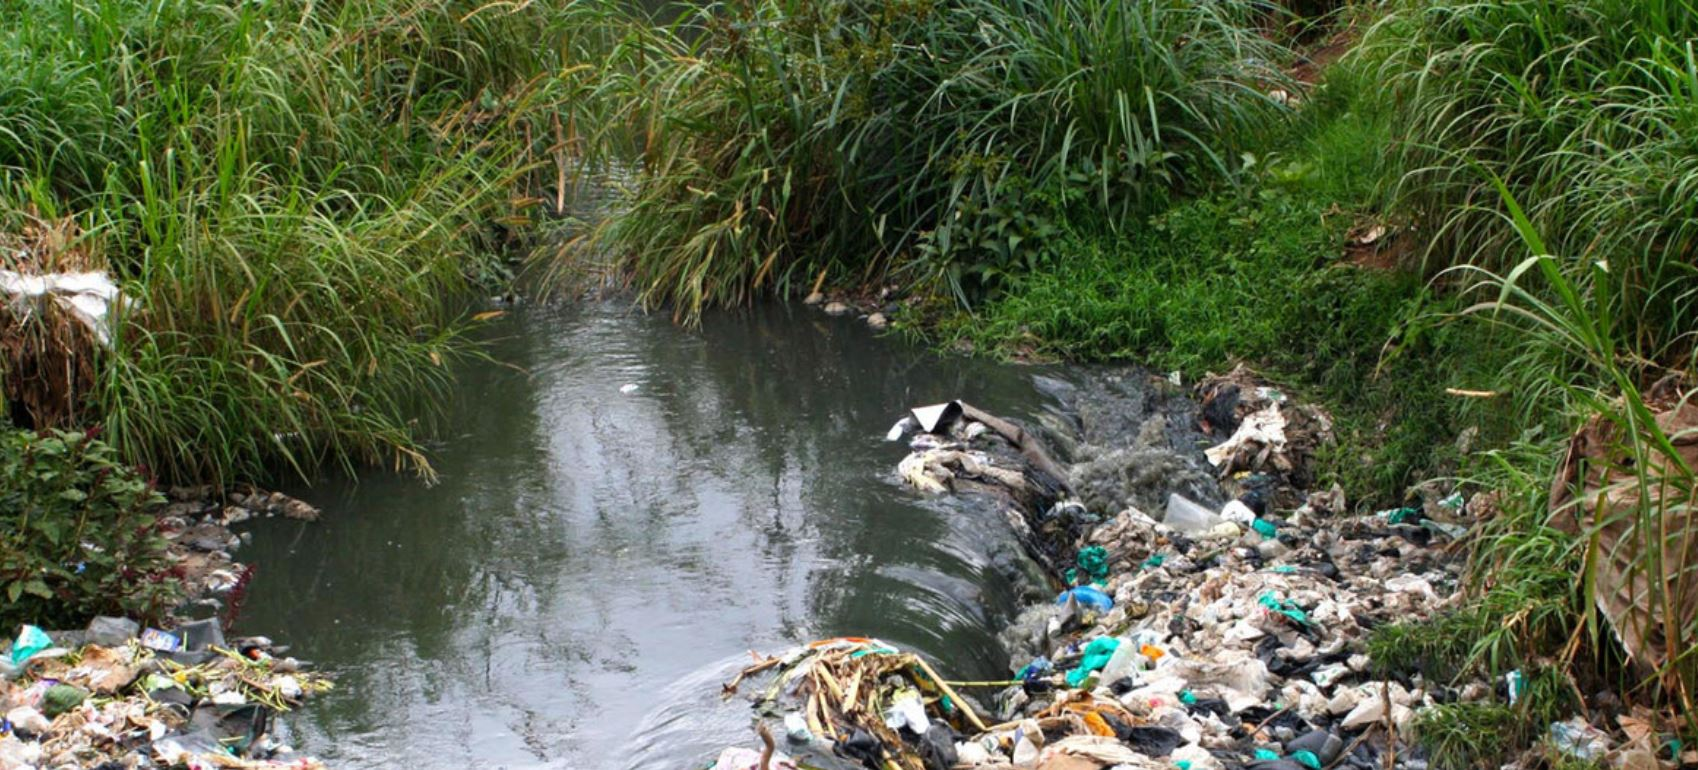 Courtesy of James Waikibia Huge amounts of waste including plastics are thrown from in the Kenyan capital of Nairobi into the Nairobi river.